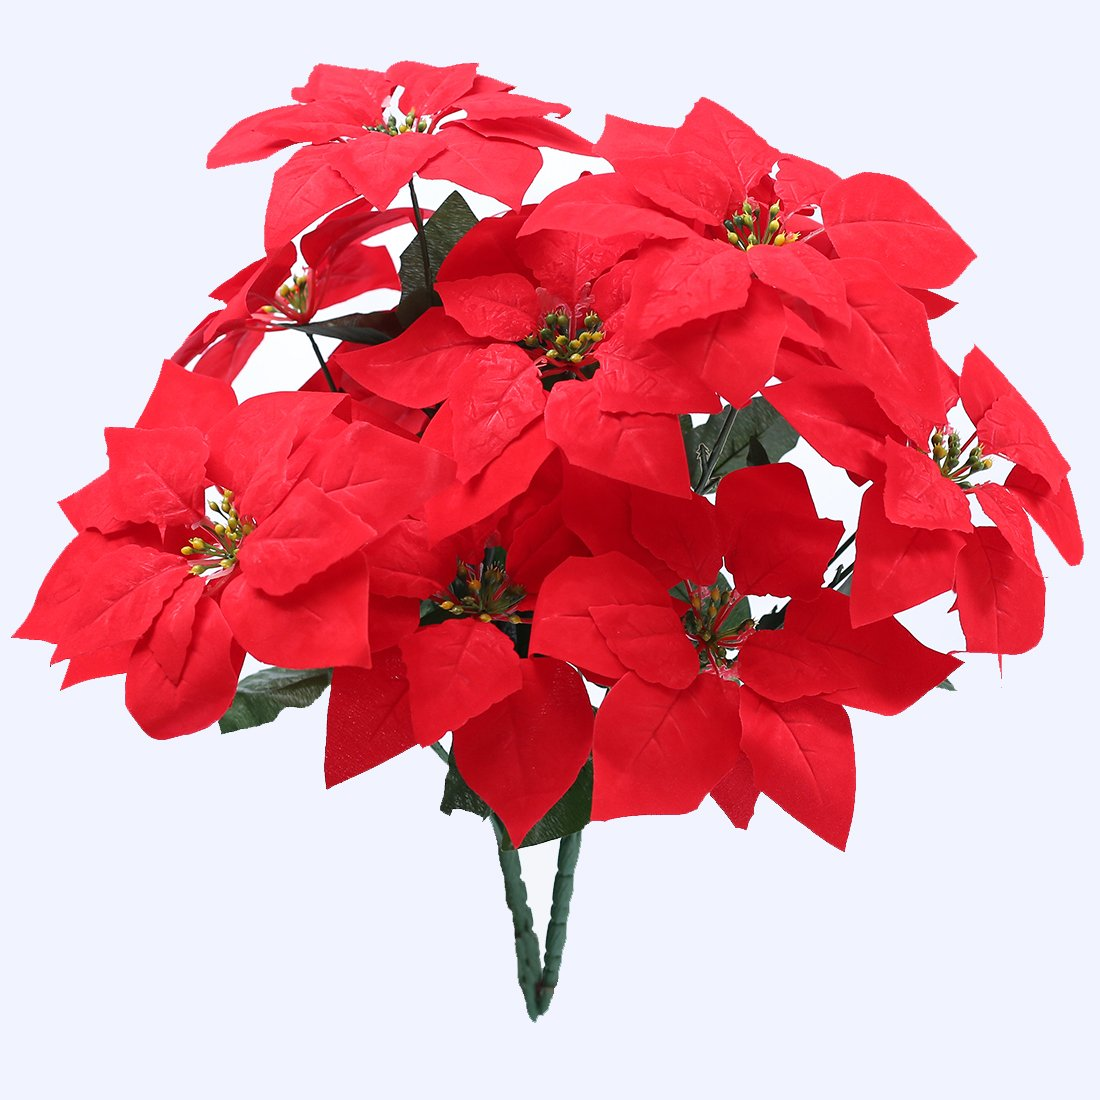 Christmas Red Flowers, JUSTOYOU 2PCS Artificial Poinsettia Flower Bouquet for Christmas Homes Decor